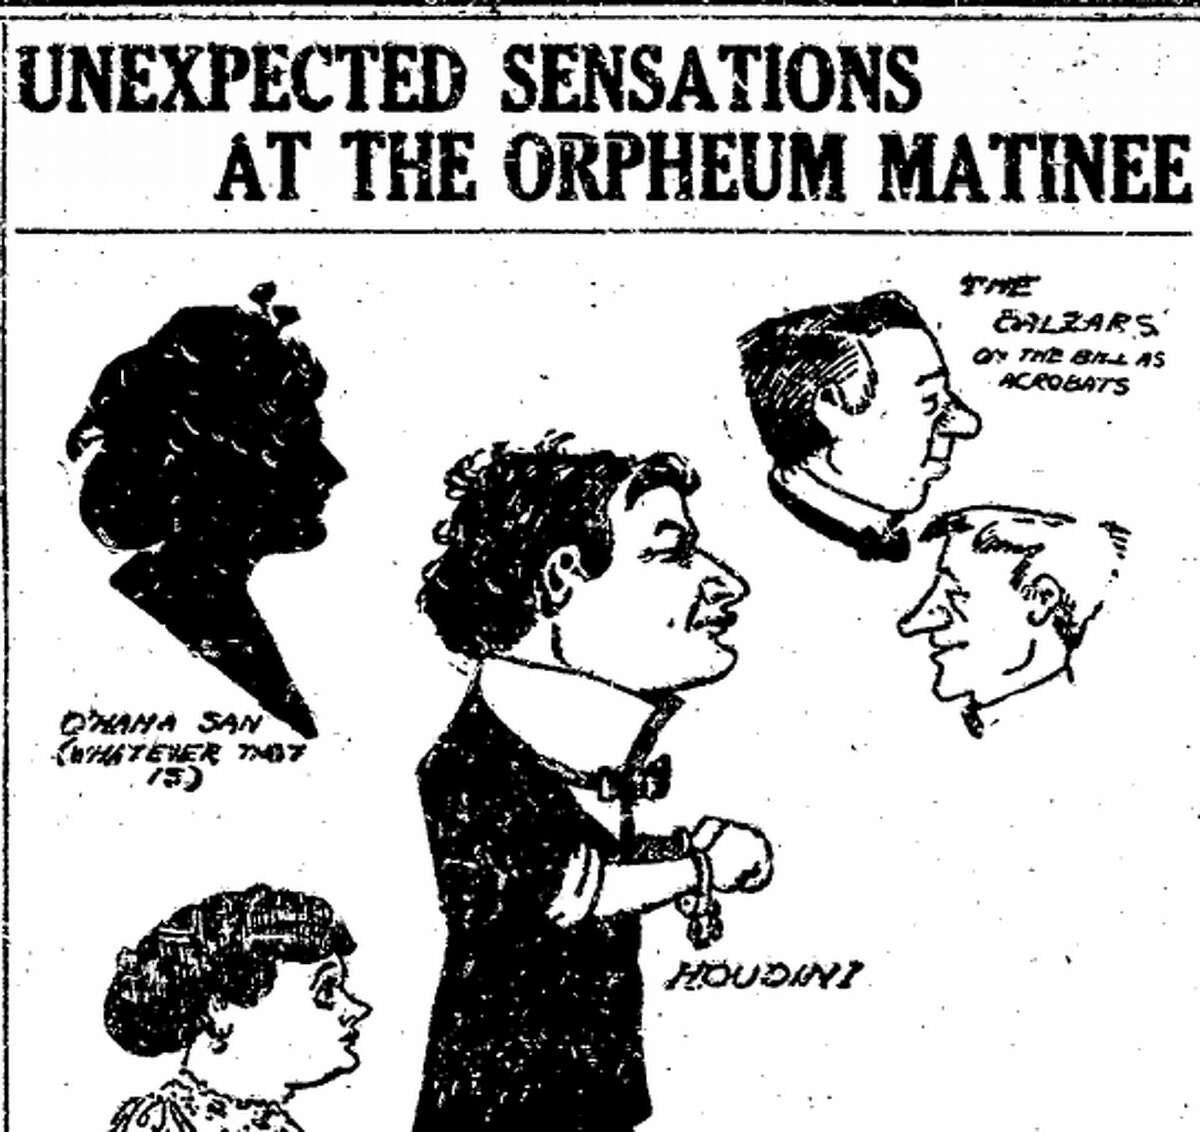 A 1907 advertisement for Harry Houdini's appearance at the Orpheum Theatre in San Francisco.